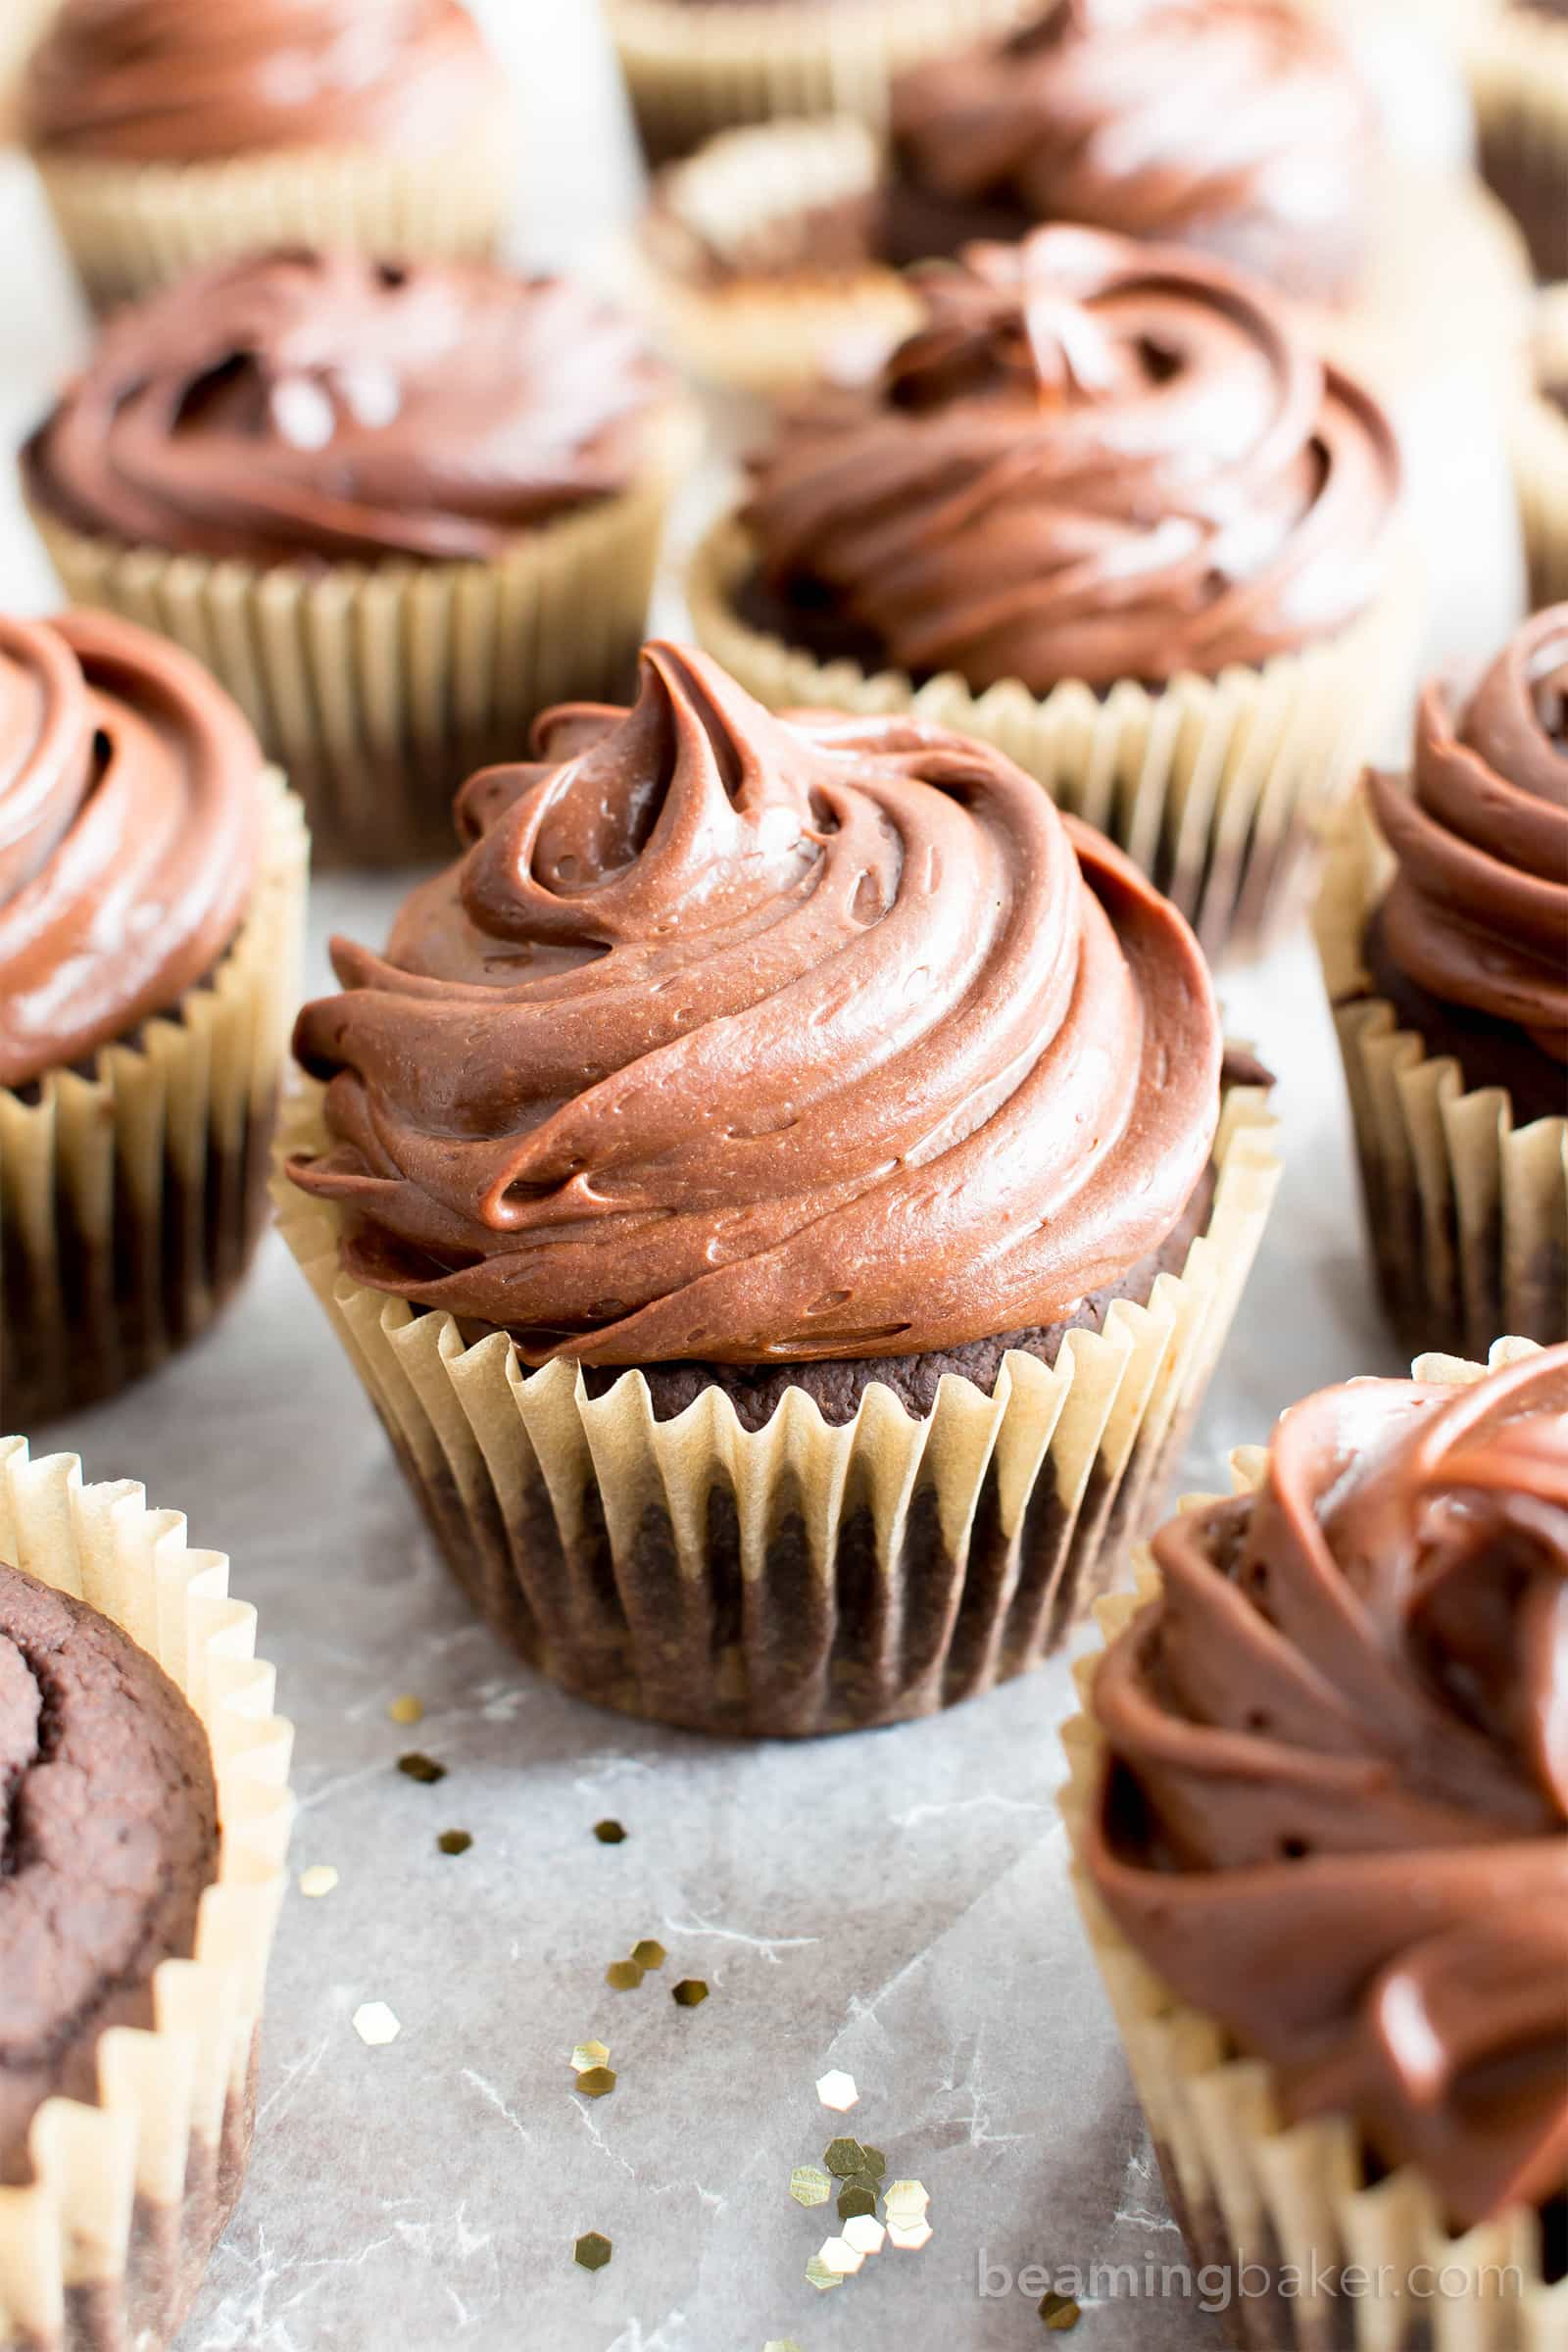 Vegan Gluten Free Chocolate Cupcakes (V, GF): an easy recipe for deliciously moist chocolate cupcakes topped with silky smooth chocolate frosting. #Vegan #GlutenFree #DairyFree #Dessert #Cupcakes | Recipe on BeamingBaker.com